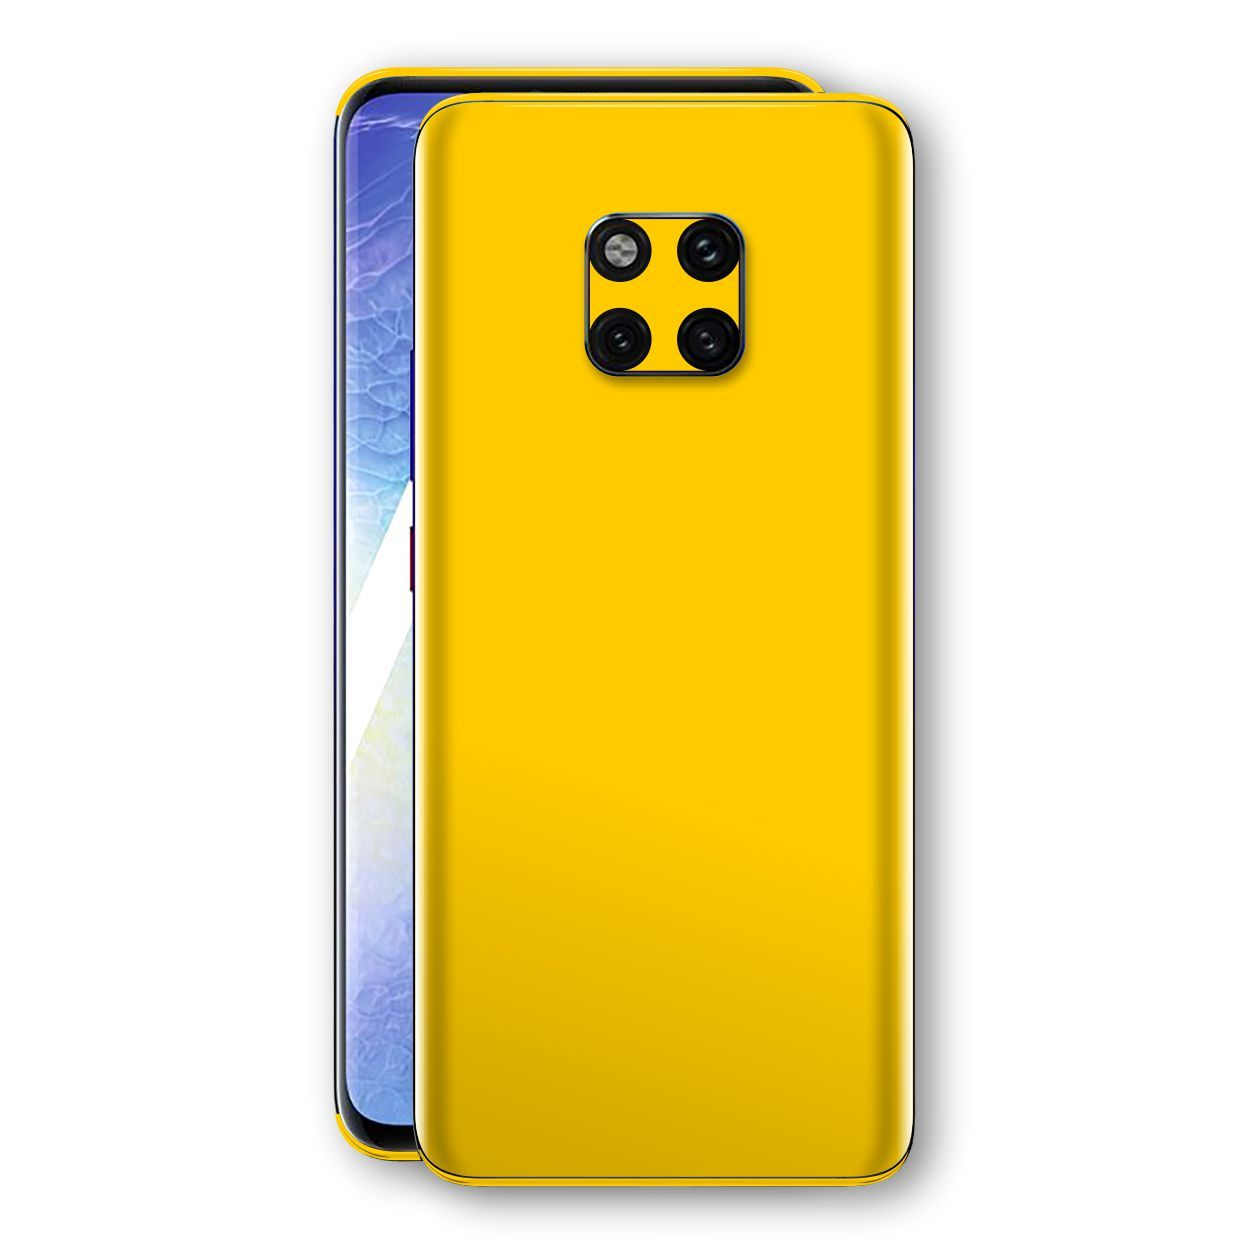 Huawei MATE 20 PRO Golden Yellow Glossy Gloss Finish Skin, Decal, Wrap, Protector, Cover by EasySkinz | EasySkinz.com